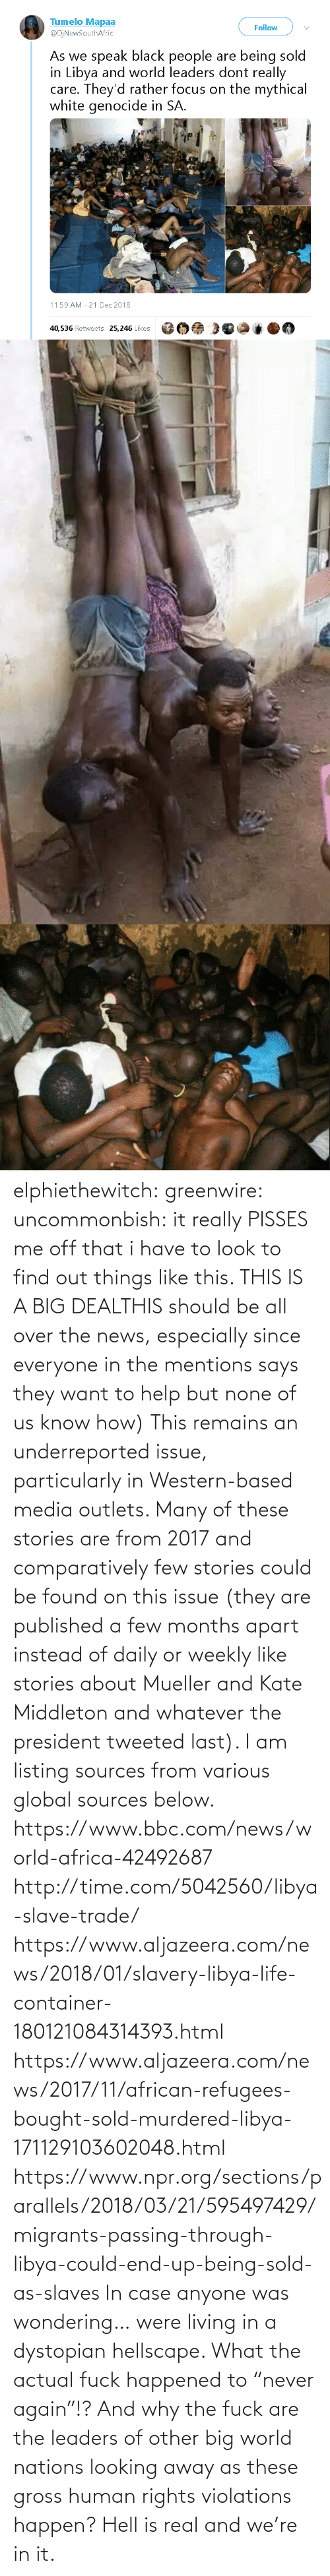 "everyone: elphiethewitch: greenwire:  uncommonbish:  it really PISSES me off that i have to look to find out things like this. THIS IS A BIG DEALTHIS should be all over the news, especially since everyone in the mentions says they want to help but none of us know how)  This remains an underreported issue, particularly in Western-based media outlets. Many of these stories are from 2017 and comparatively few stories could be found on this issue (they are published a few months apart instead of daily or weekly like stories about Mueller and Kate Middleton and whatever the president tweeted last). I am listing sources from various global sources below.  https://www.bbc.com/news/world-africa-42492687 http://time.com/5042560/libya-slave-trade/ https://www.aljazeera.com/news/2018/01/slavery-libya-life-container-180121084314393.html https://www.aljazeera.com/news/2017/11/african-refugees-bought-sold-murdered-libya-171129103602048.html https://www.npr.org/sections/parallels/2018/03/21/595497429/migrants-passing-through-libya-could-end-up-being-sold-as-slaves   In case anyone was wondering… were living in a dystopian hellscape.  What the actual fuck happened to ""never again""!? And why the fuck are the leaders of other big world nations looking away as these gross human rights violations happen?  Hell is real and we're in it."